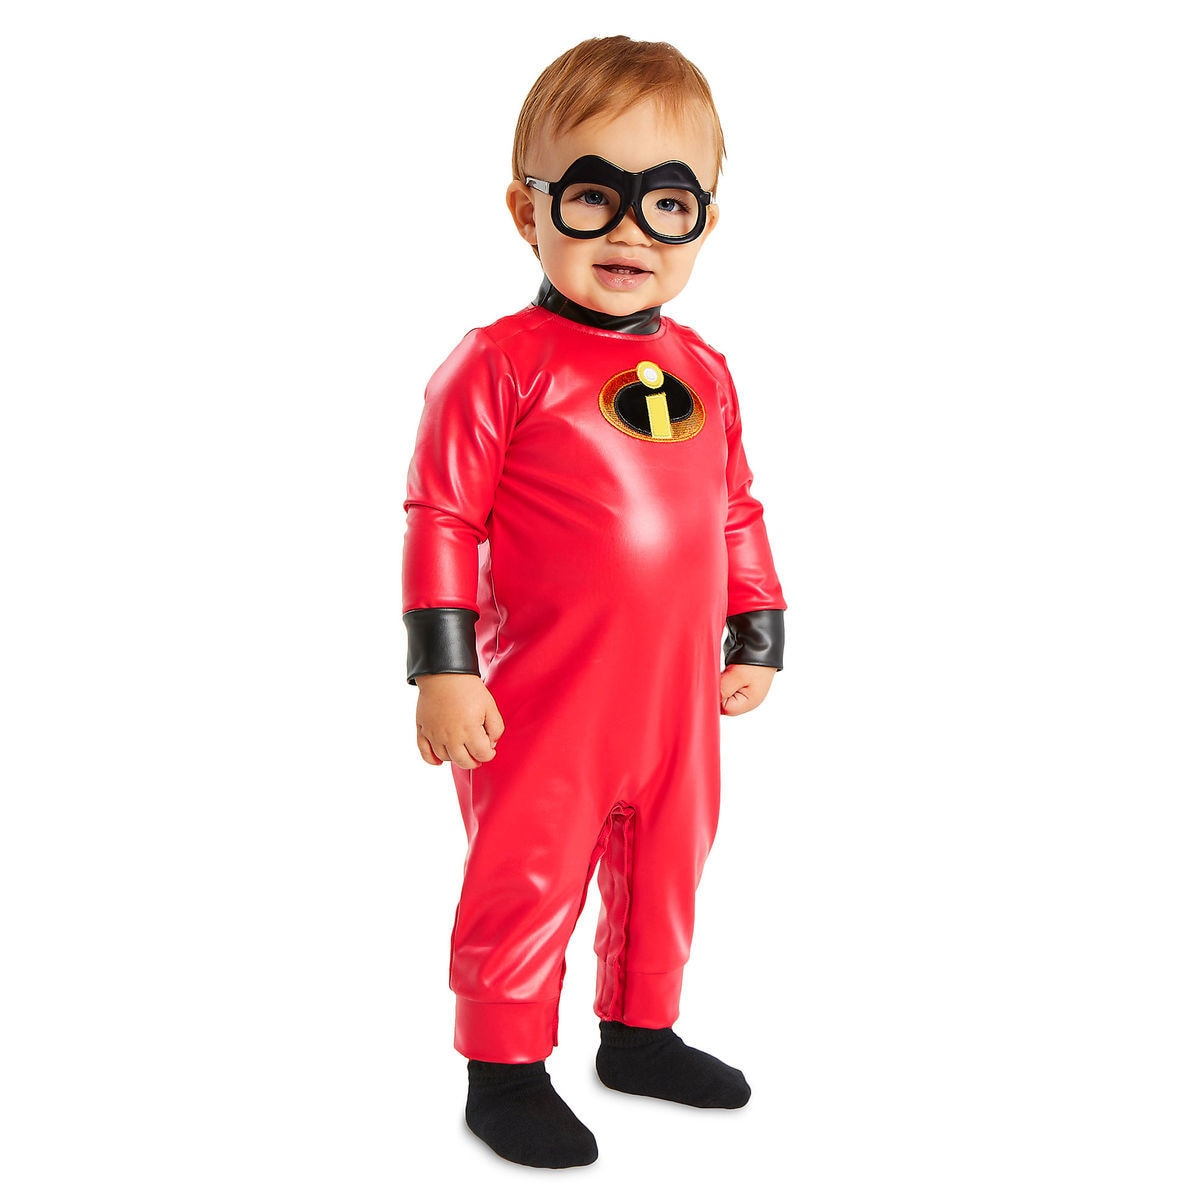 jack-jack costume for baby - incredibles 2 | shopdisney